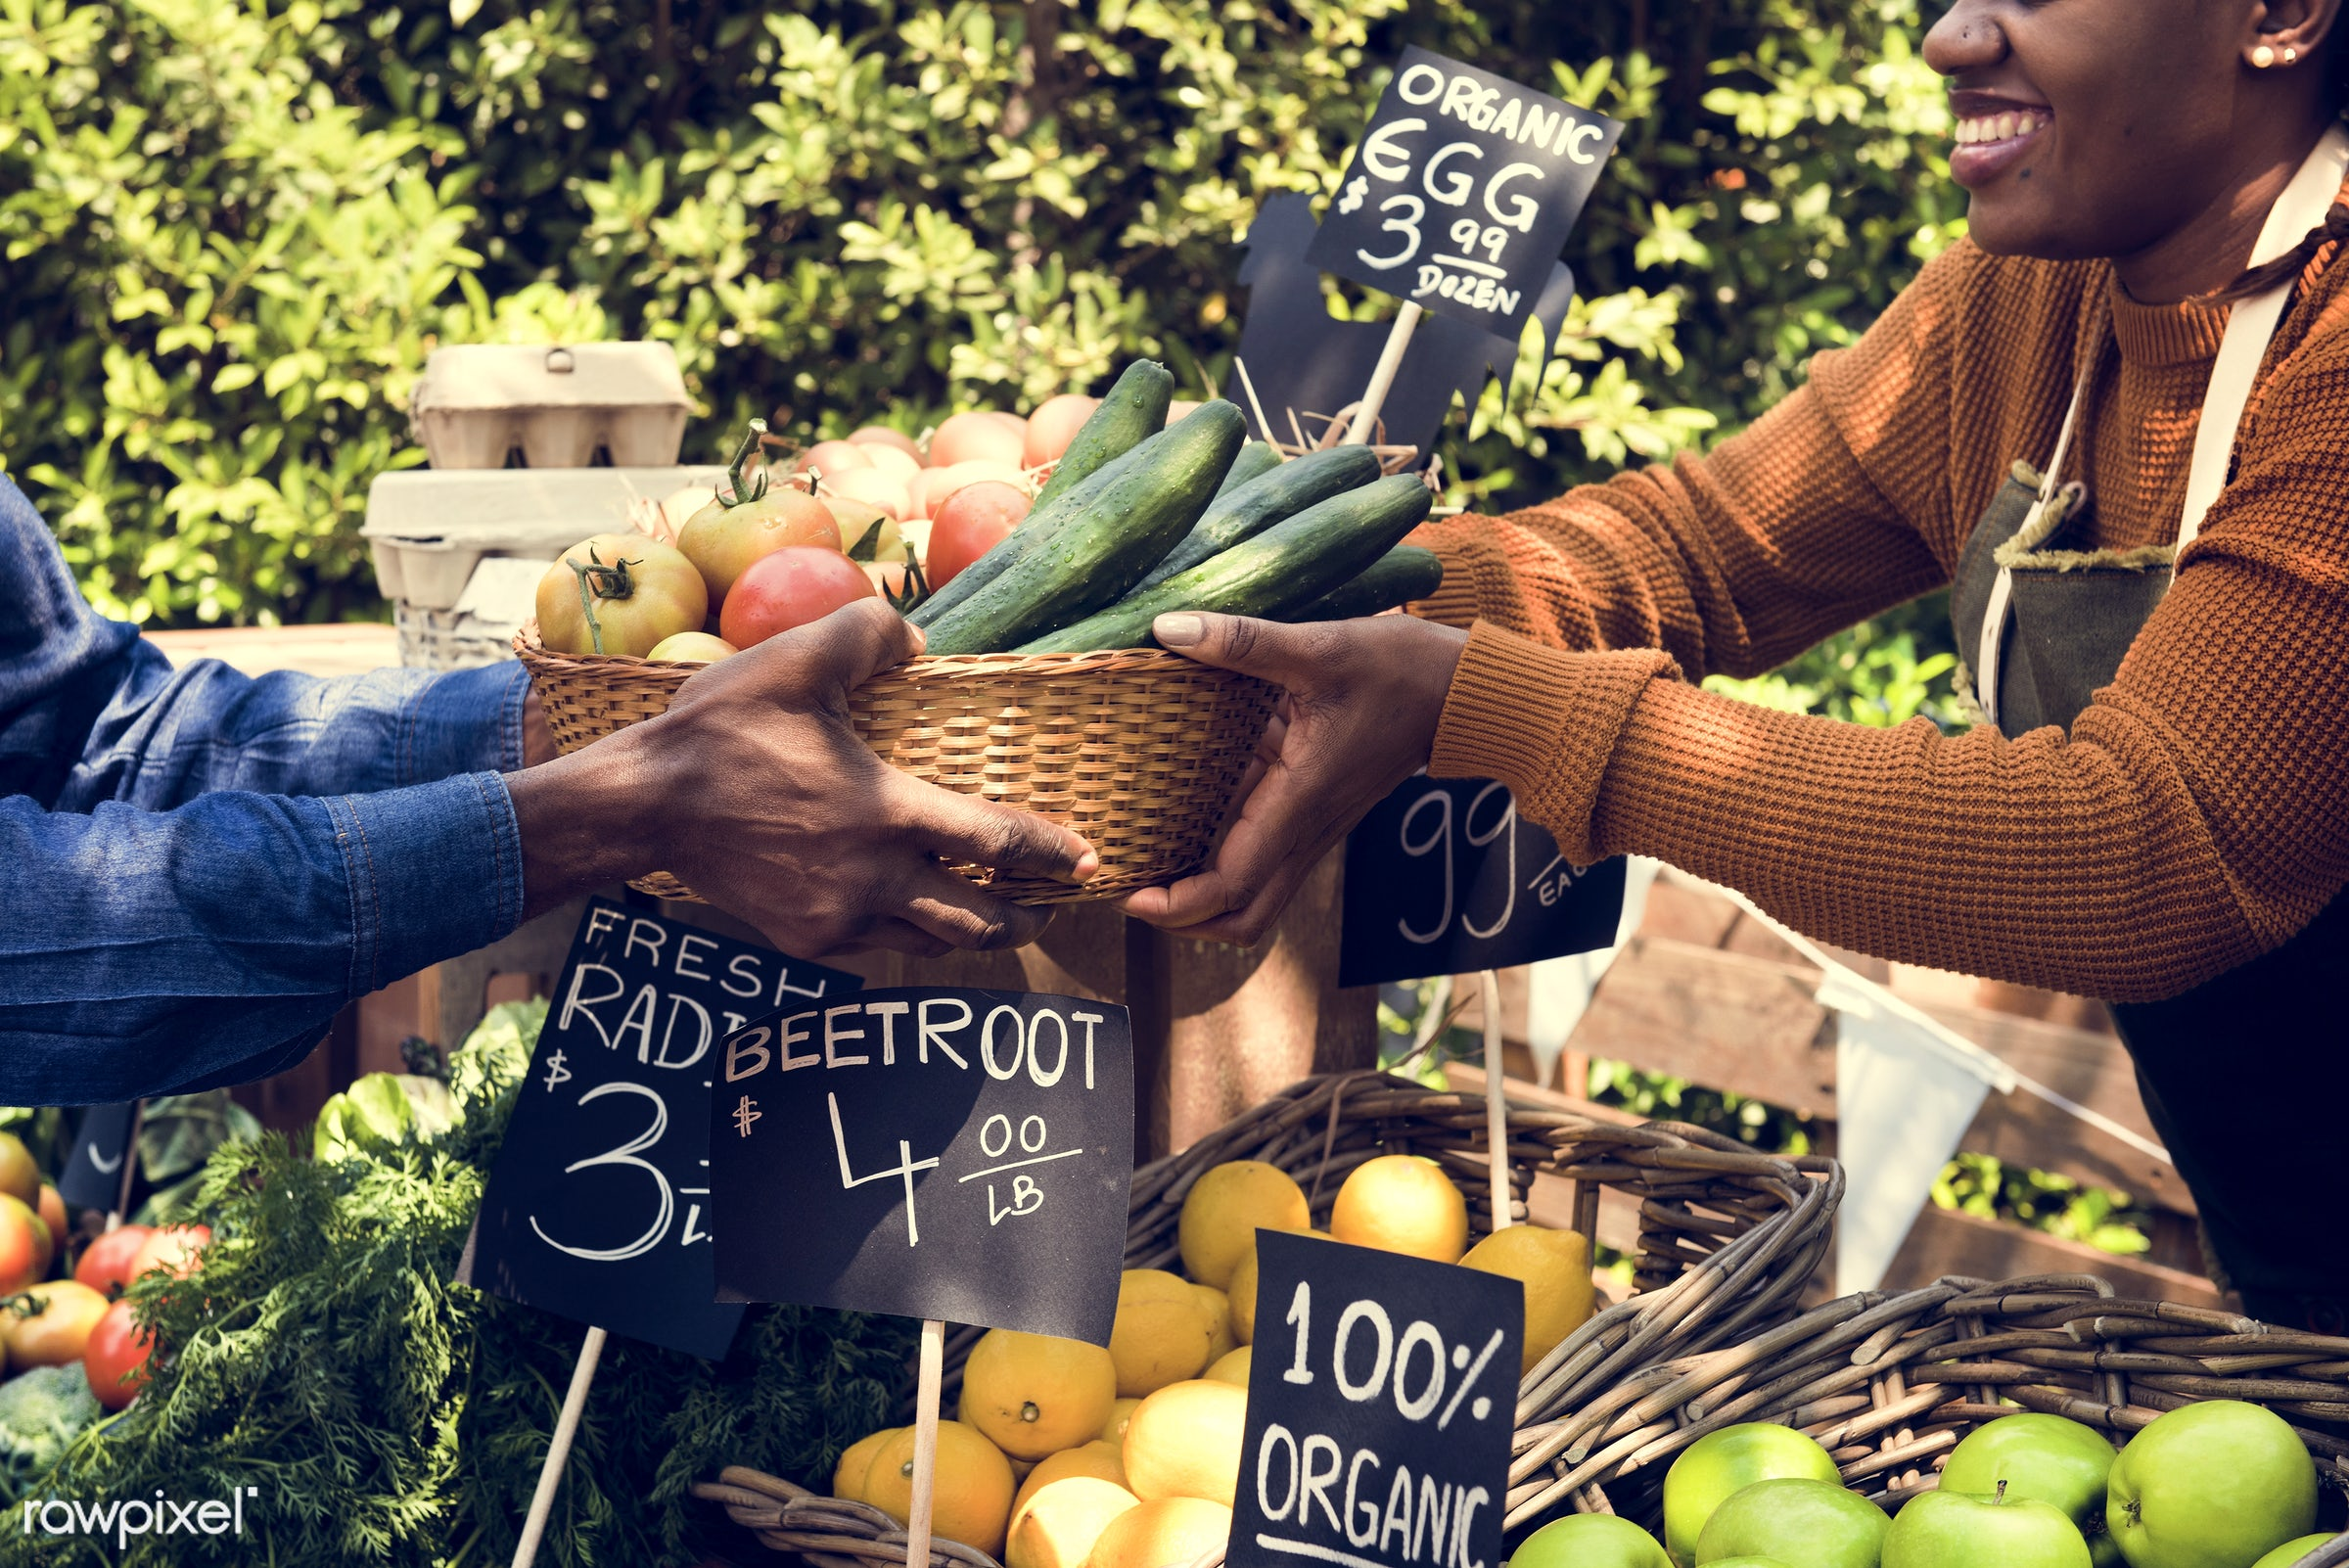 shop, person, tomato, stall, consumer, egg, people, farmer, choosing, choose, display, tomatoes, sign, nutrition, price,...